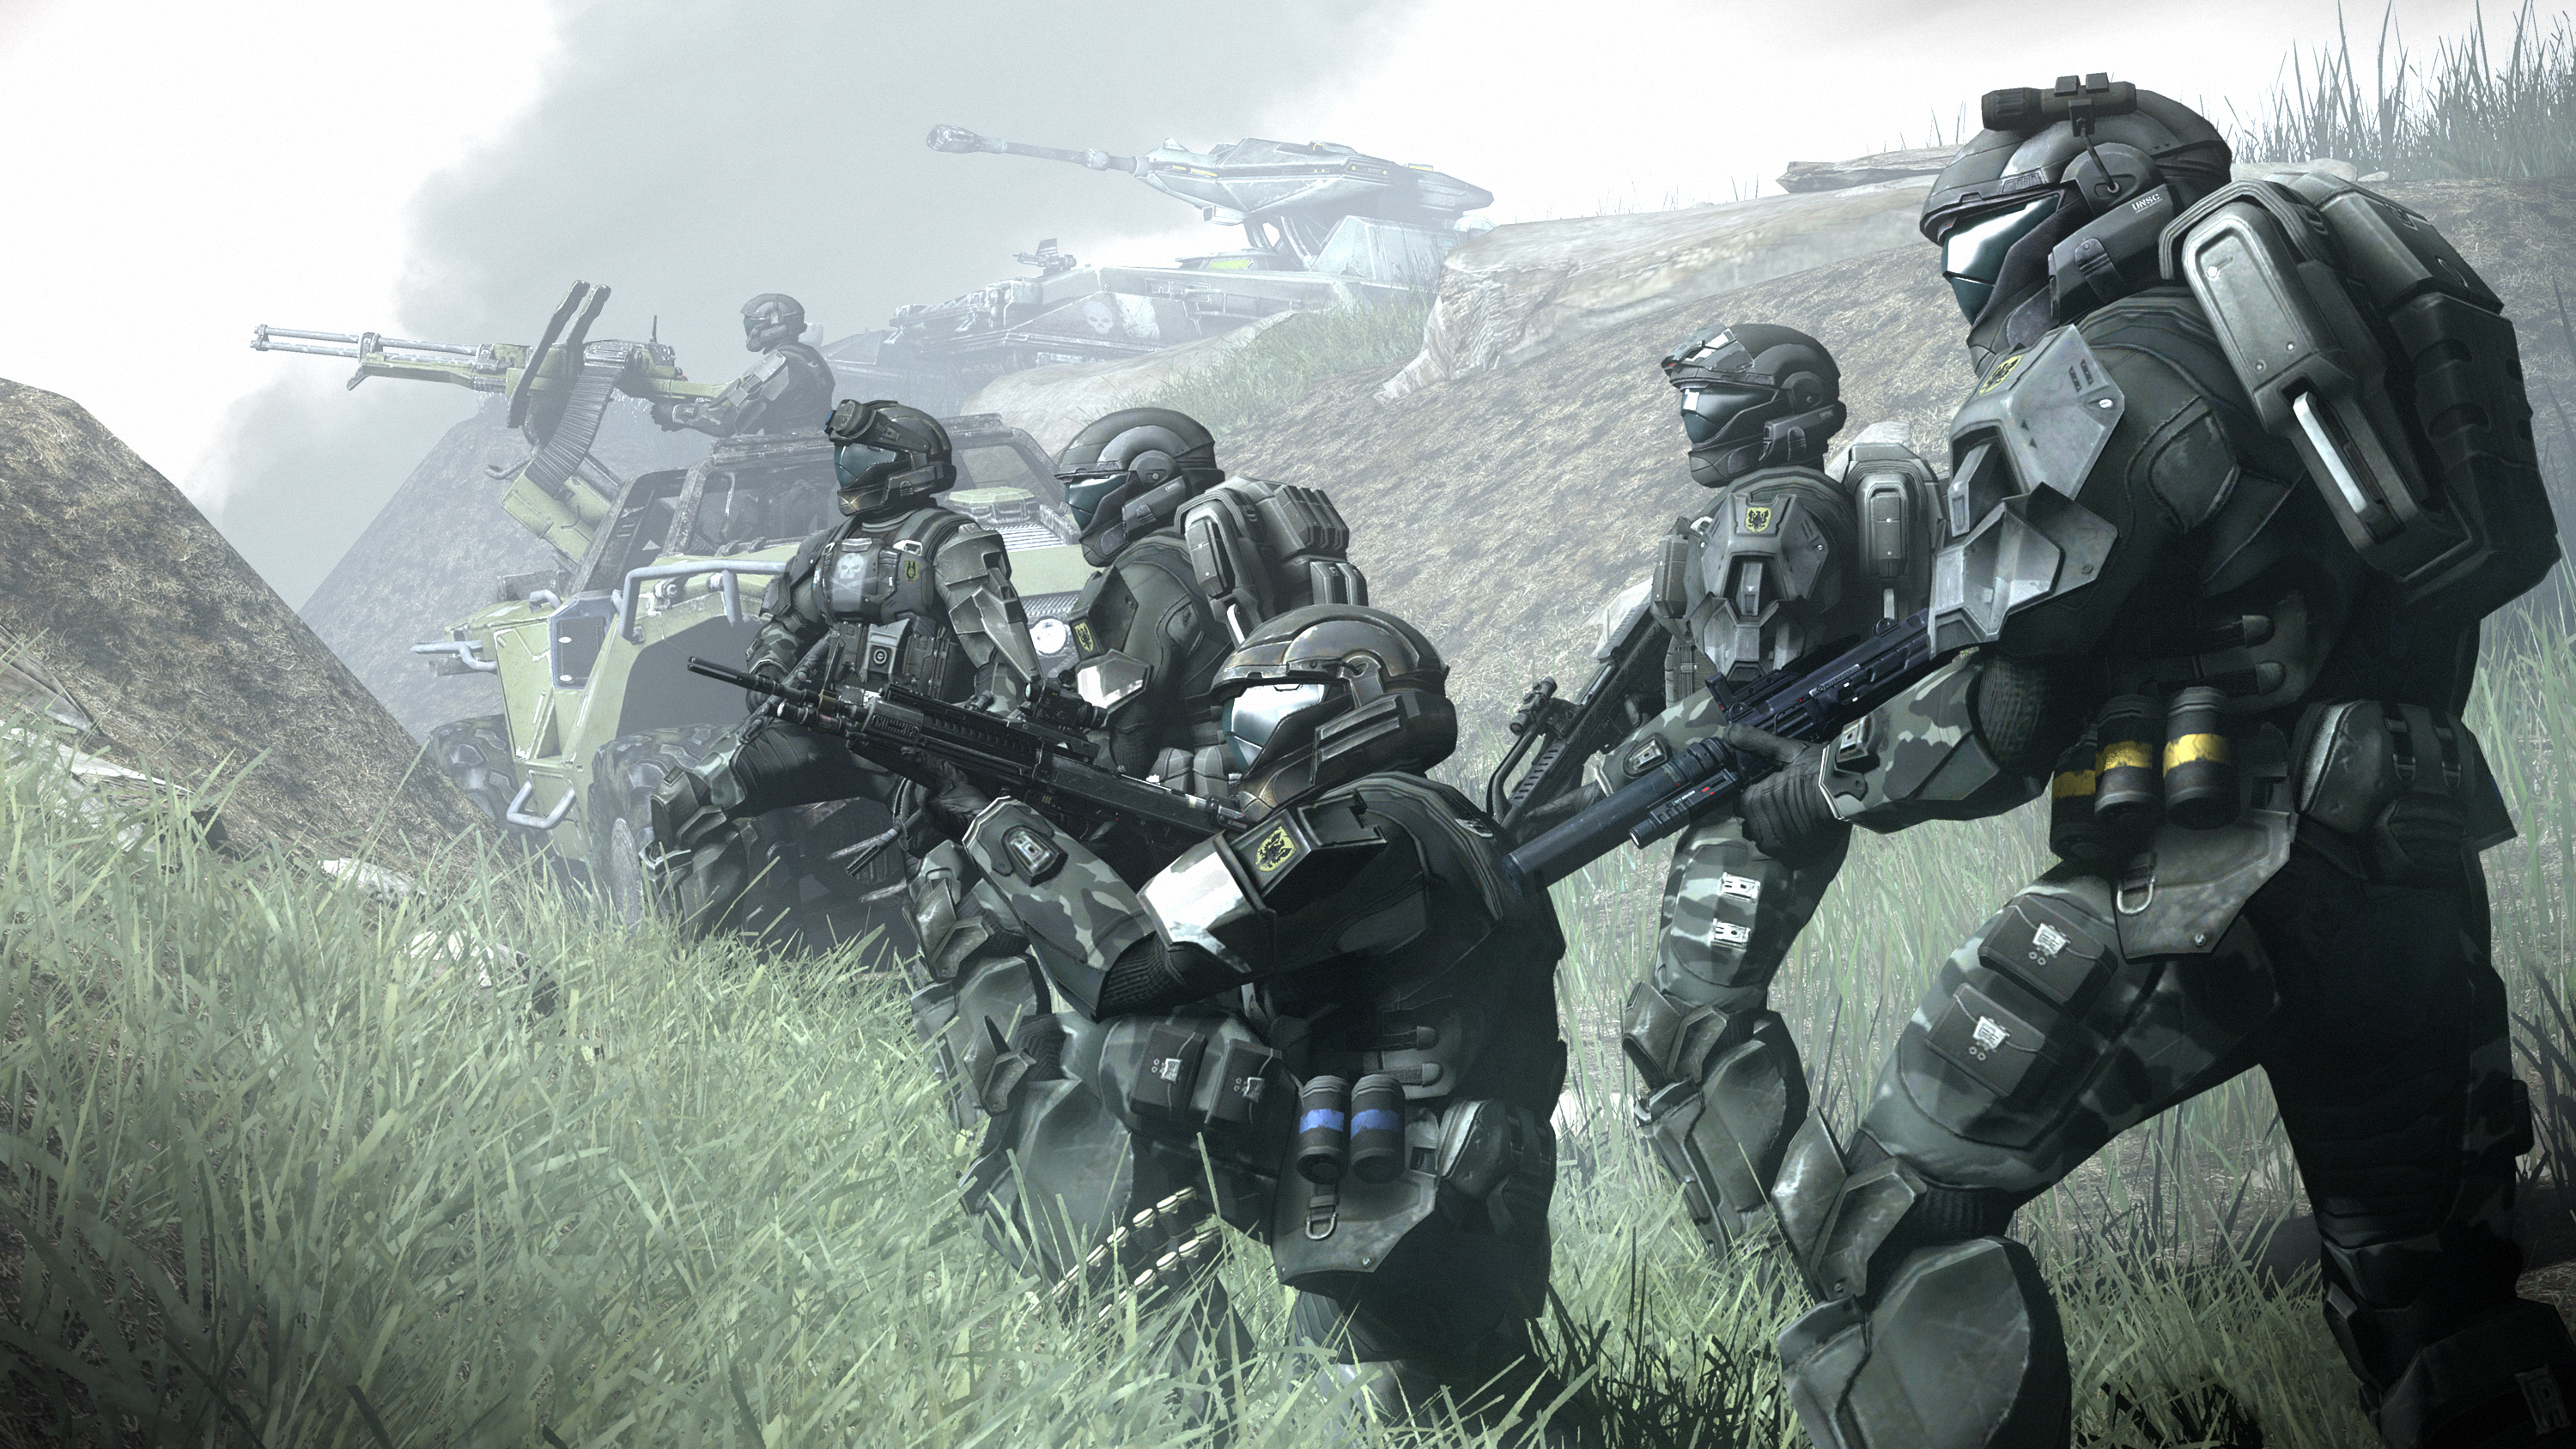 halo 3: odst hd wallpaper | background image | 3000x1688 | id:715365